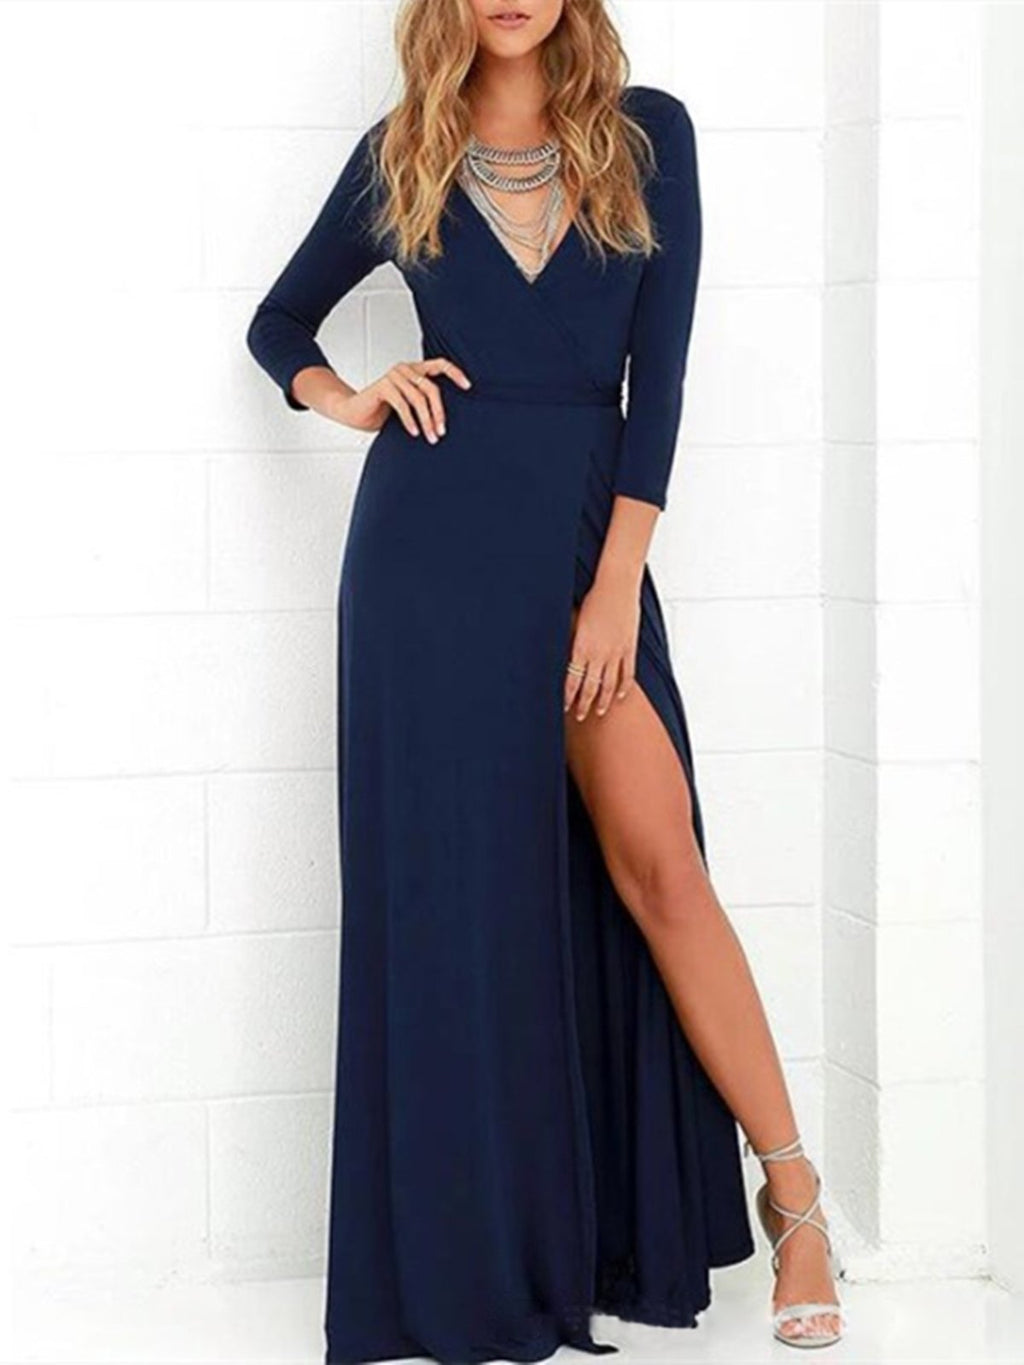 Sexy Fashion Plus Size V Neck Casual Long Sleeve Wrap Evening Gowns Maxi Dresses Rikkishop